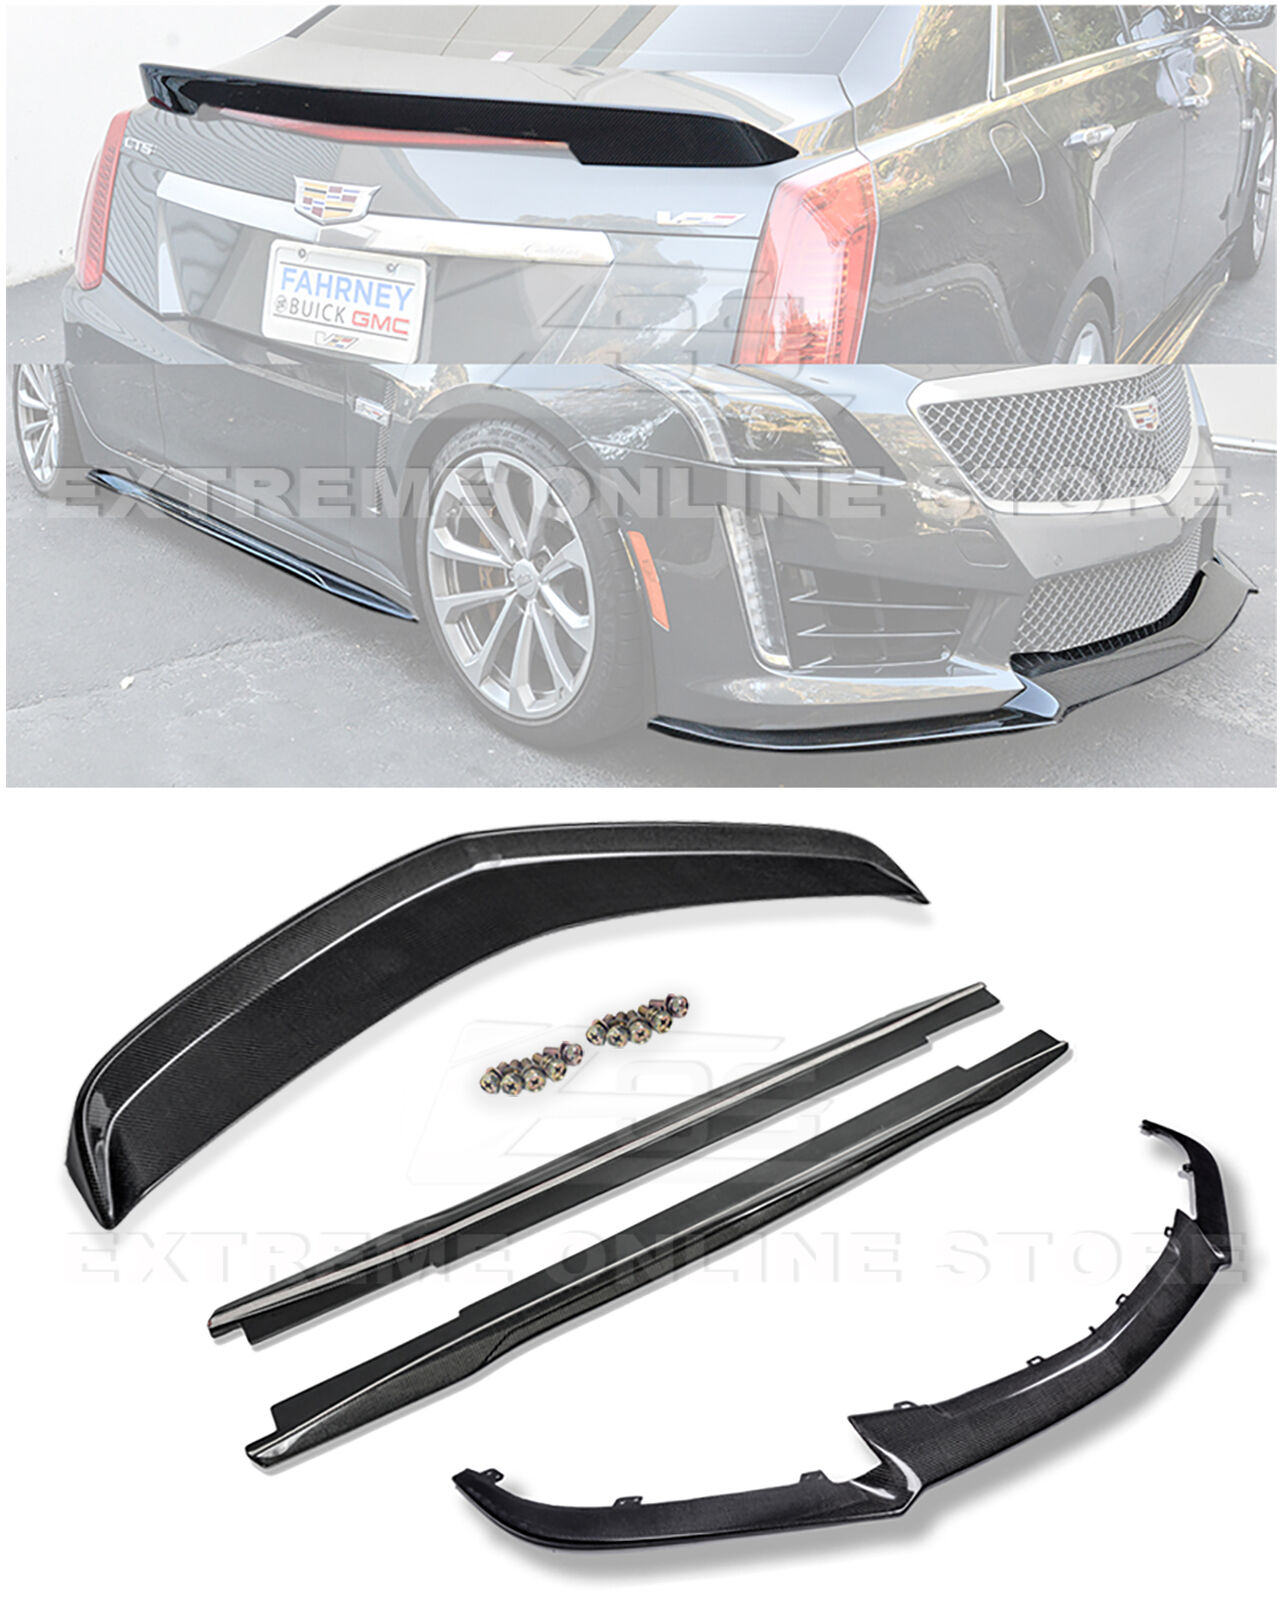 2016 Cadillac Cts V Rocker Panels: Replacement For 2016-Present Cadillac CTS-V